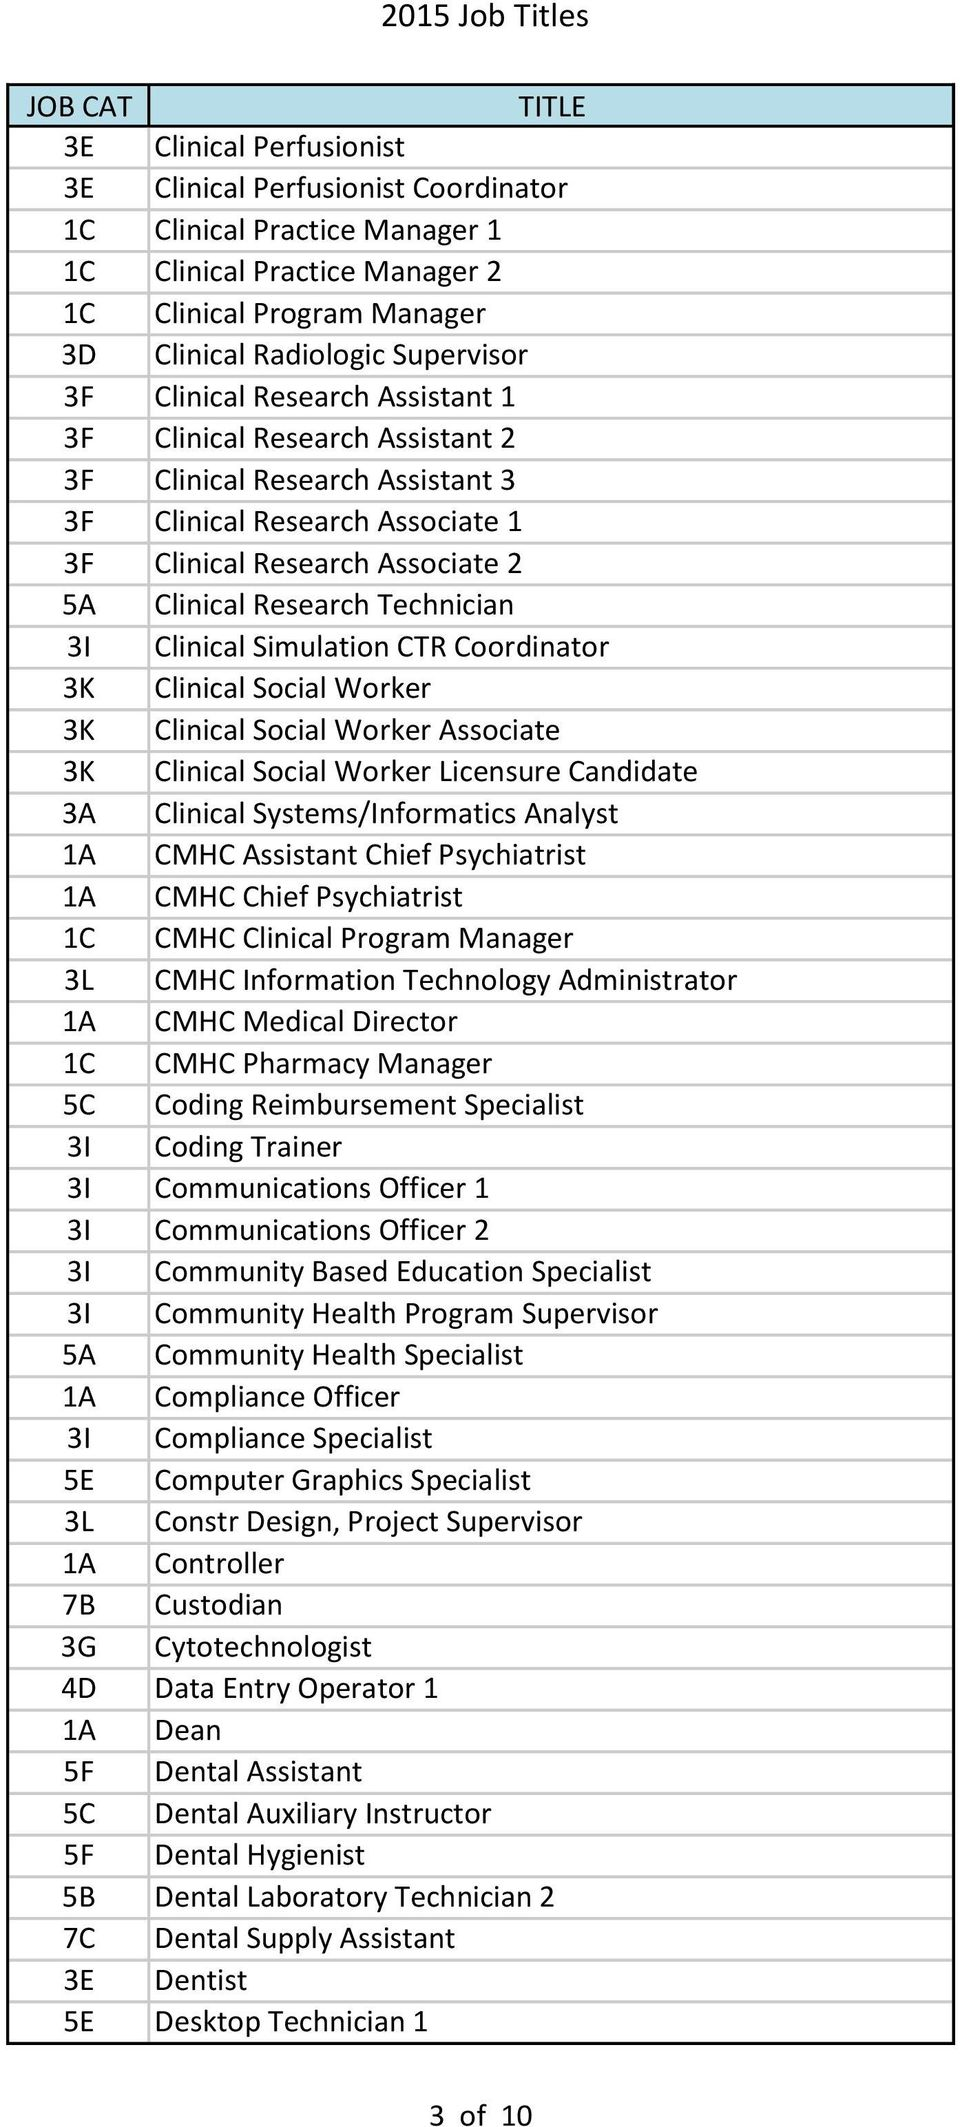 Simulation CTR Coordinator 3K Clinical Social Worker 3K Clinical Social Worker Associate 3K Clinical Social Worker Licensure Candidate 3A Clinical Systems/Informatics Analyst 1A CMHC Assistant Chief